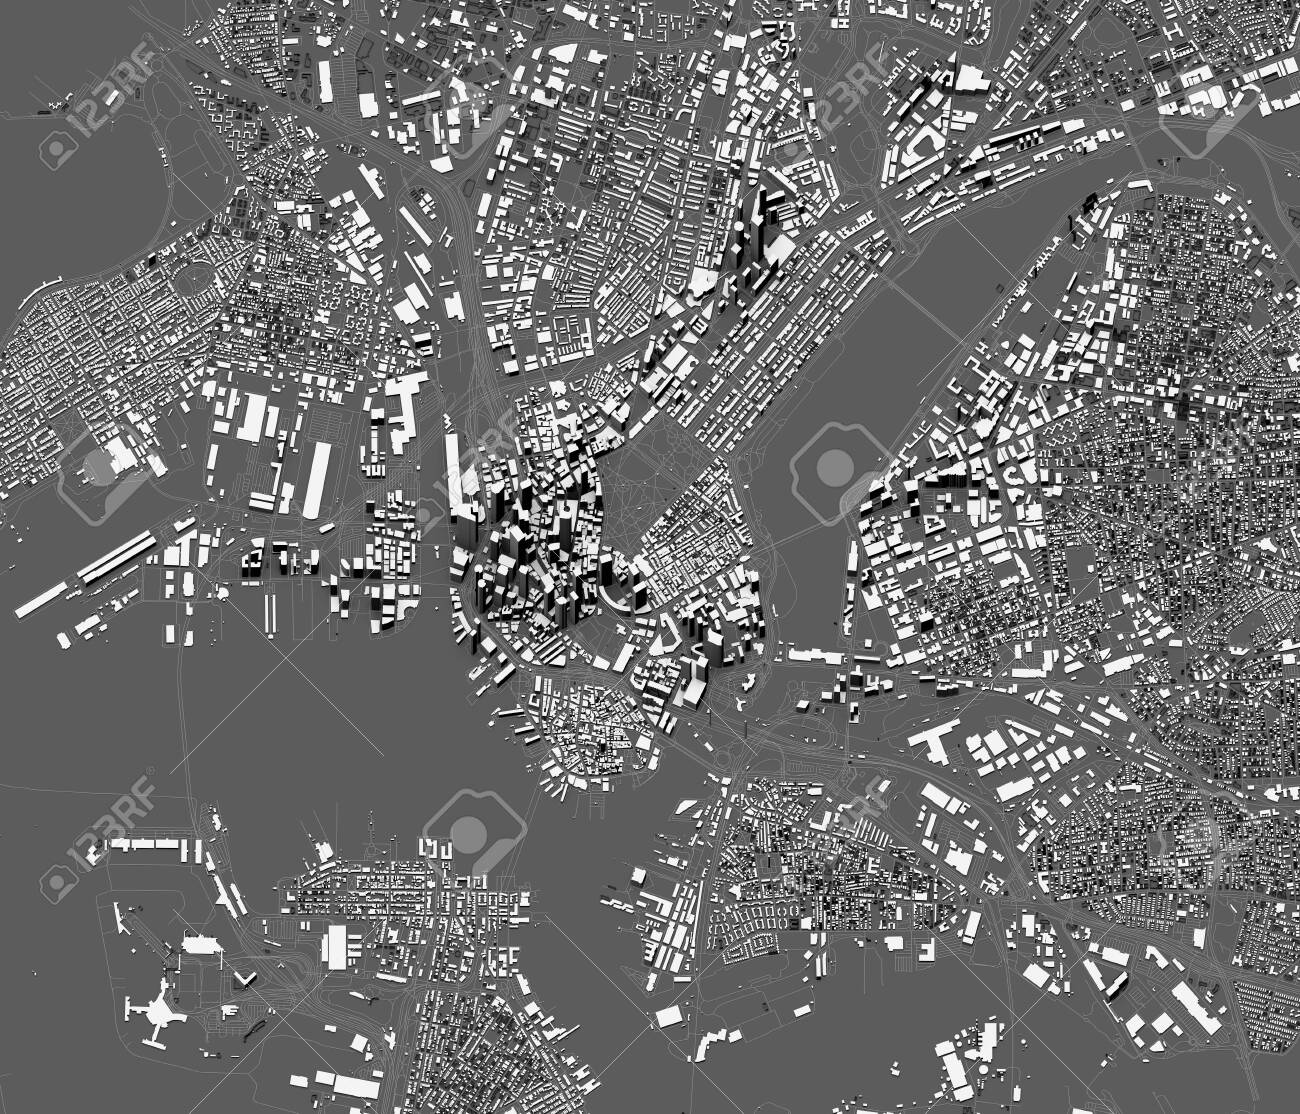 Satellite Map Of Boston Neighborhoods on satellite view of a vietnam, aerial view of neighborhoods, atlanta neighborhoods, map of seattle neighborhoods, satellite view of address zoom, satellite view of neighborhood,